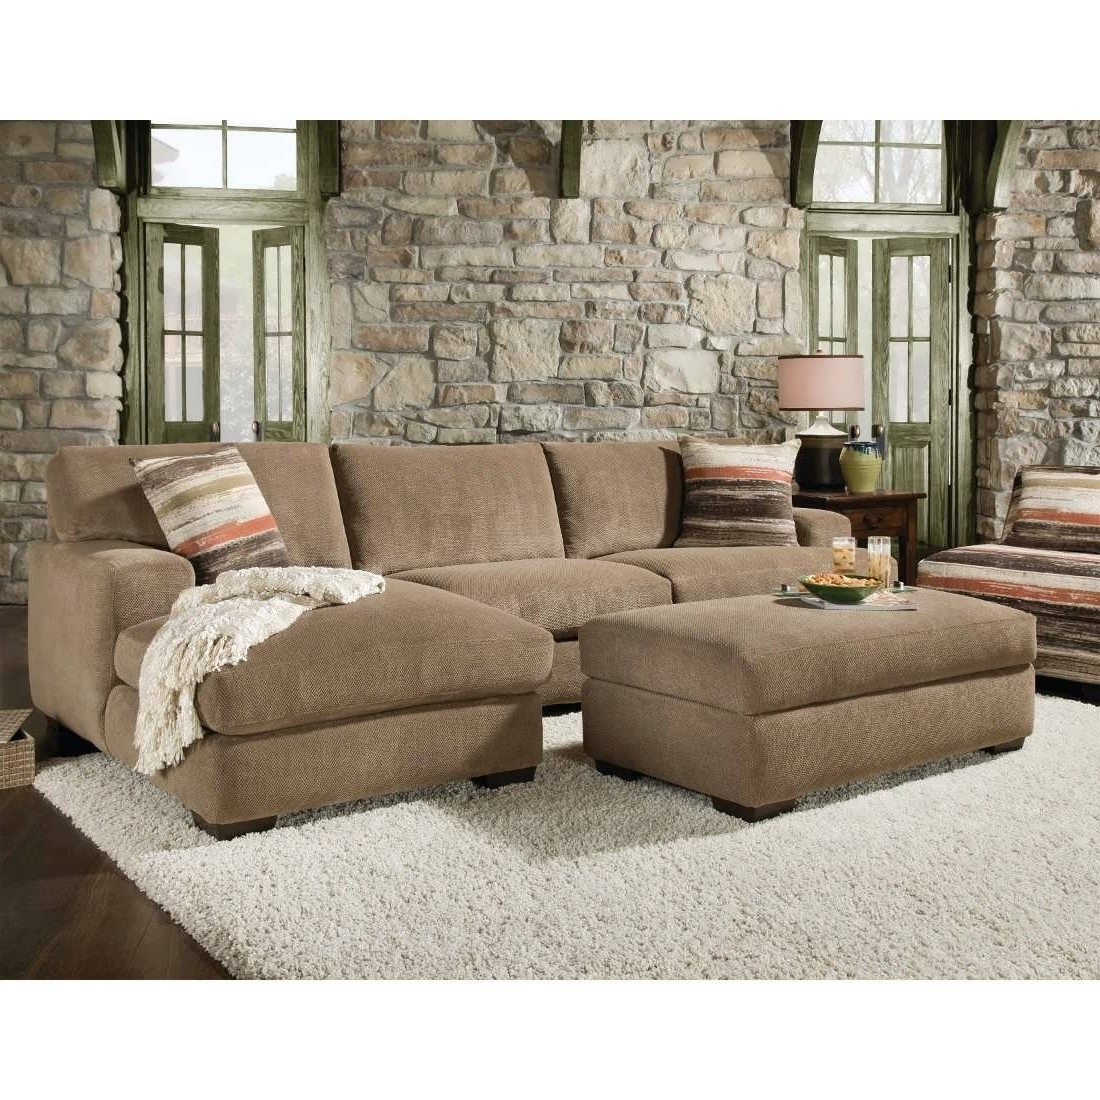 couch room full small living build tan own sectional size large sofa u with recliner your l of shaped leather chaise